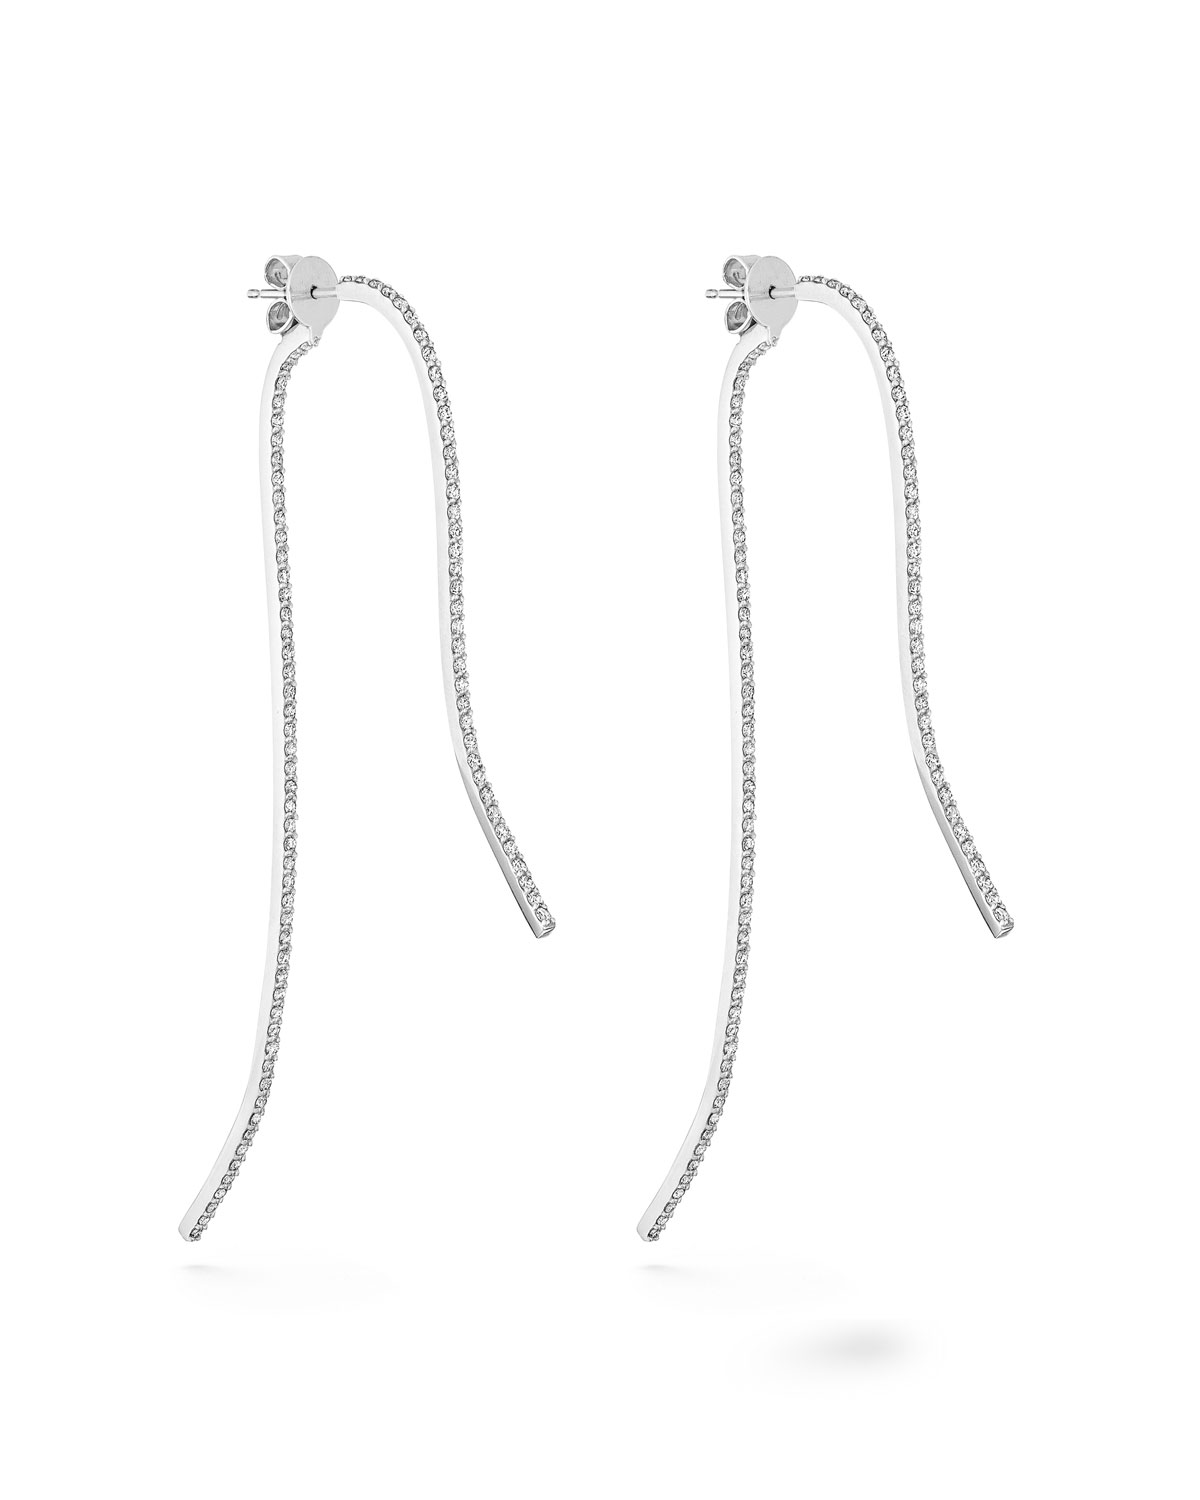 PAIGE NOVICK Infinity Sculptural 18K White Gold & Diamond Pave 2-Part Earrings in White/Gold